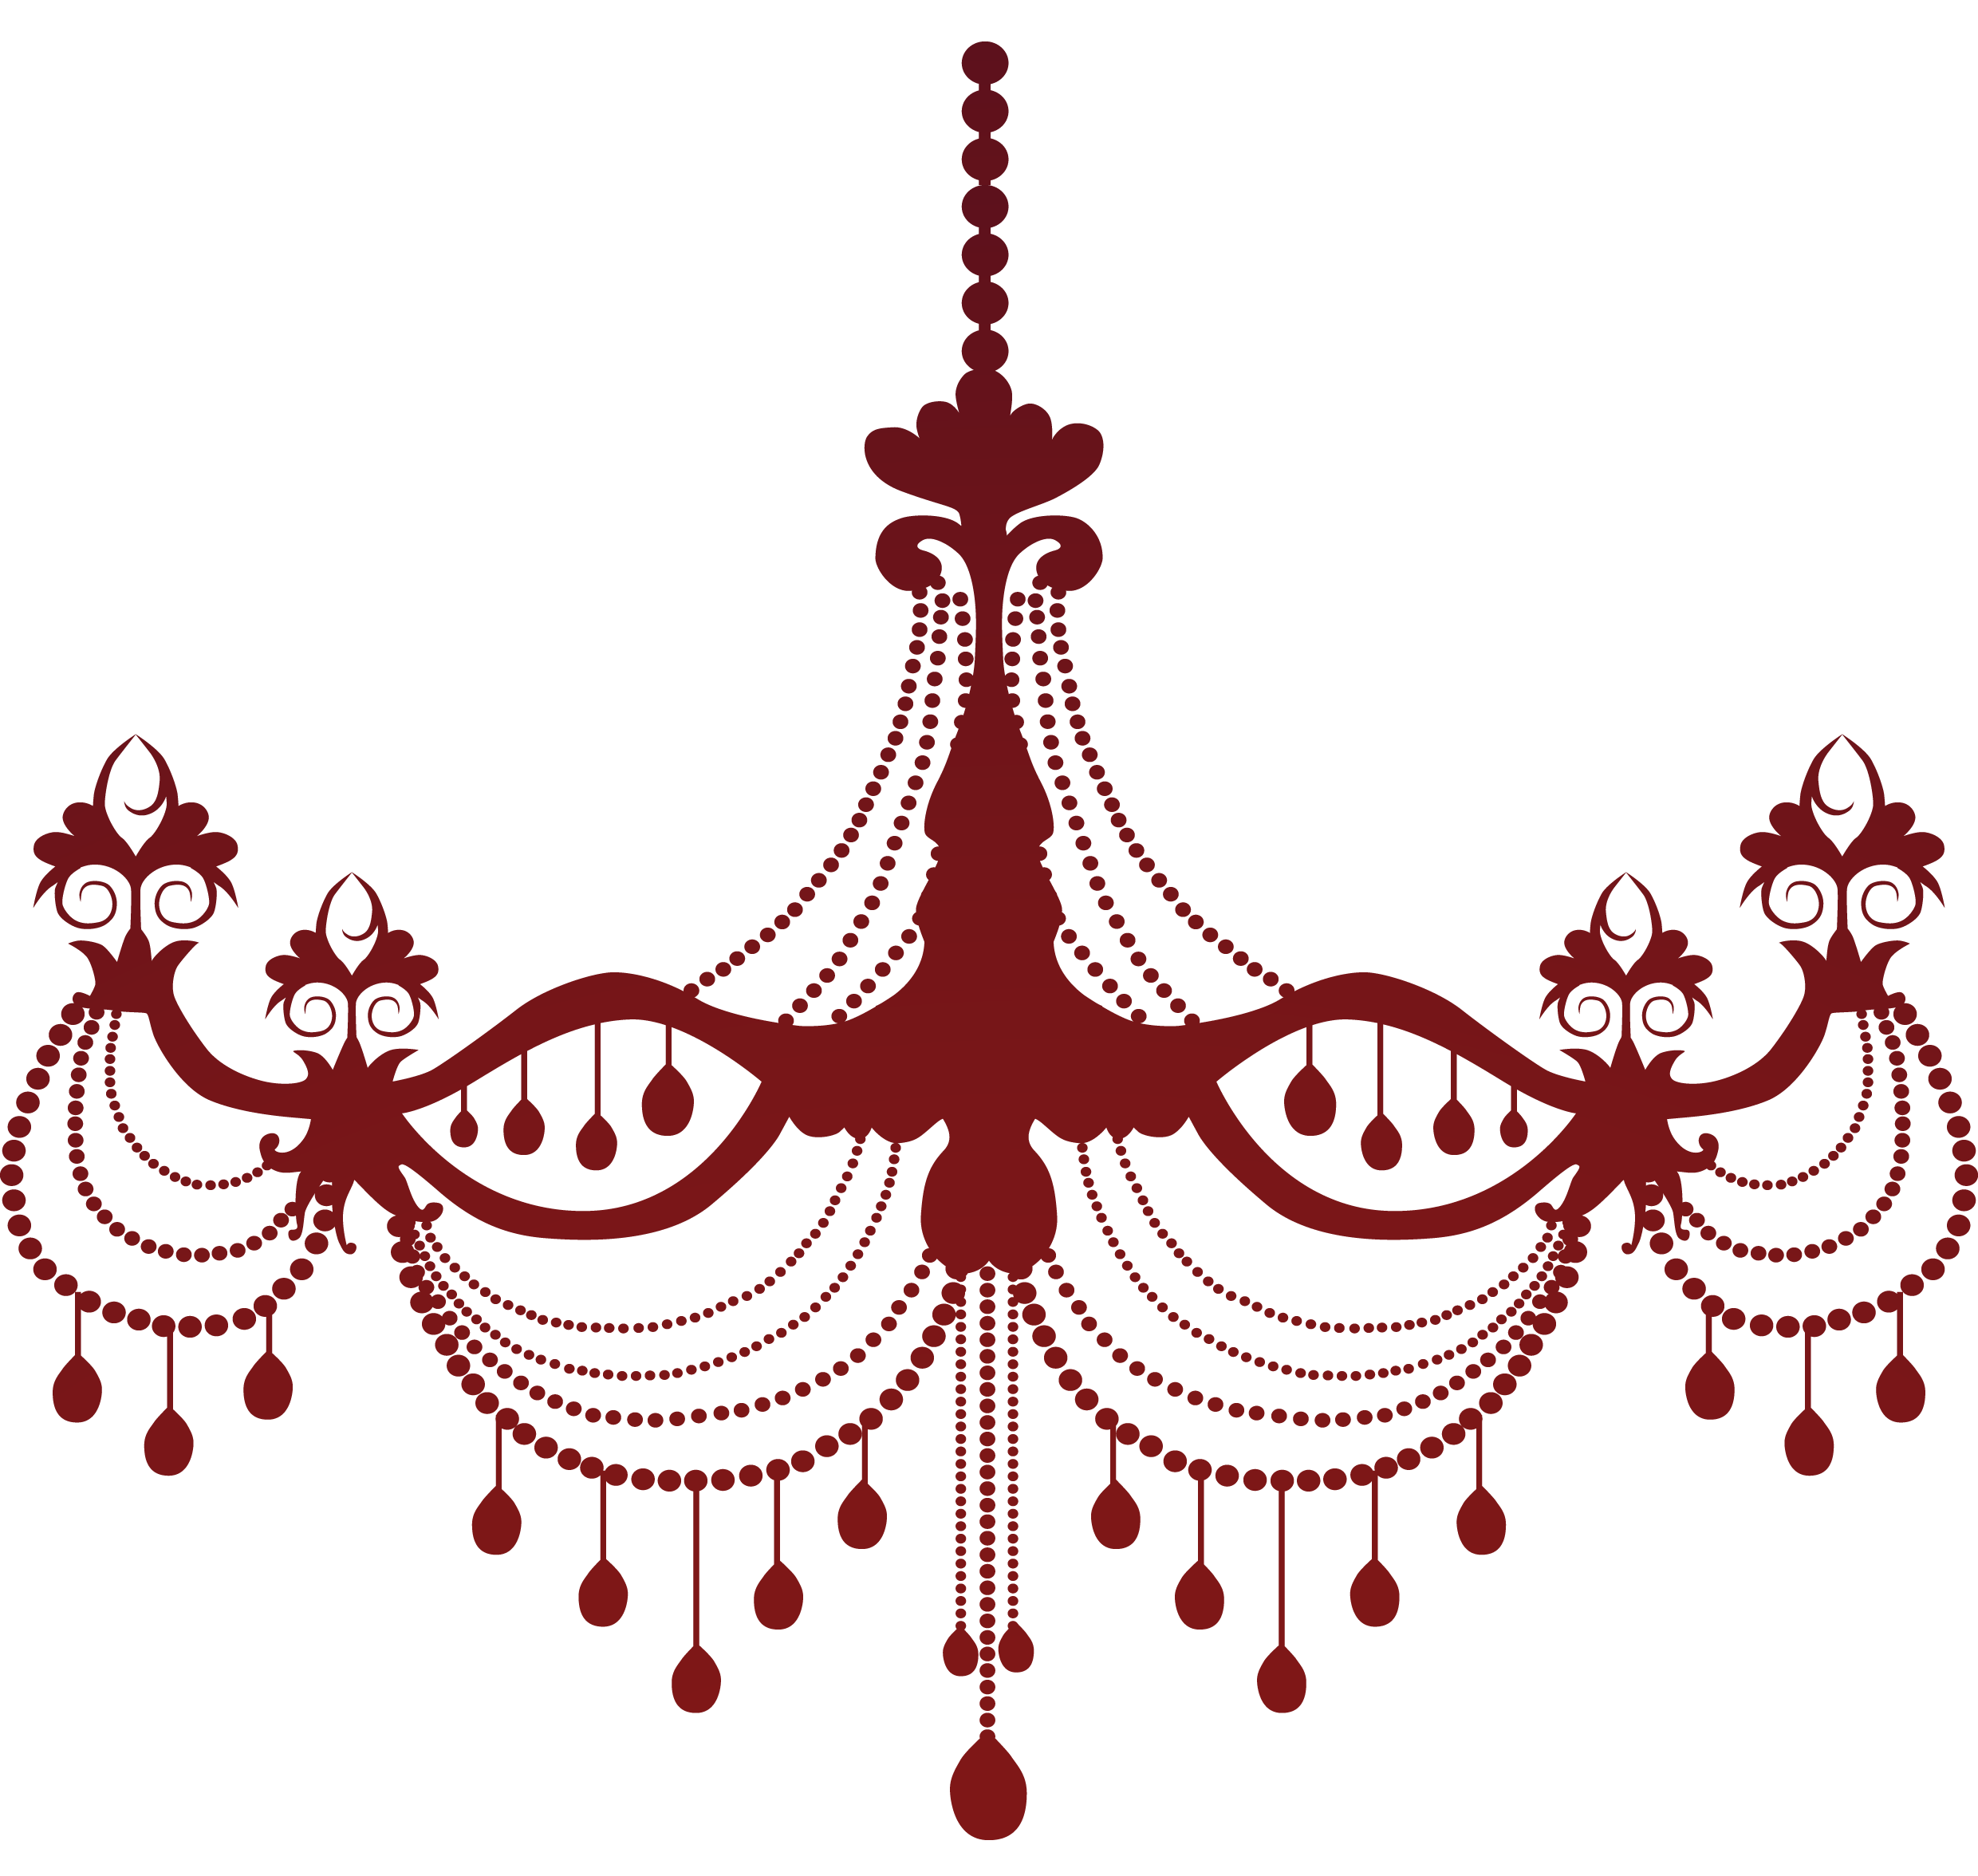 Halloween chandelier clipart graphic library فواصل زيزوووم - Google Search | دانتيل | Pinterest | Stuffing and ... graphic library